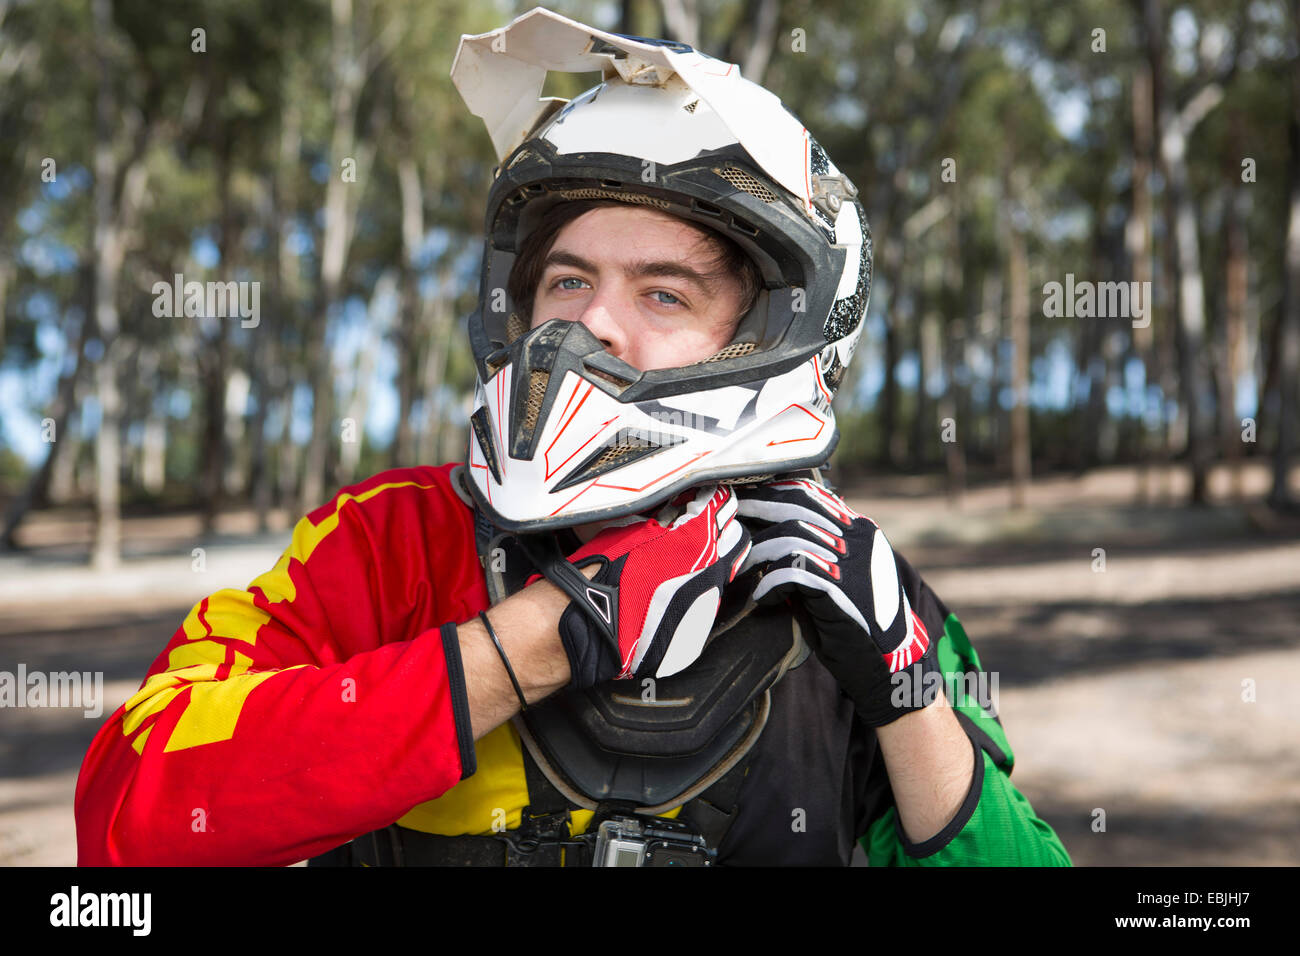 Motocross motorcycle competitor fastening helmet in forest - Stock Image